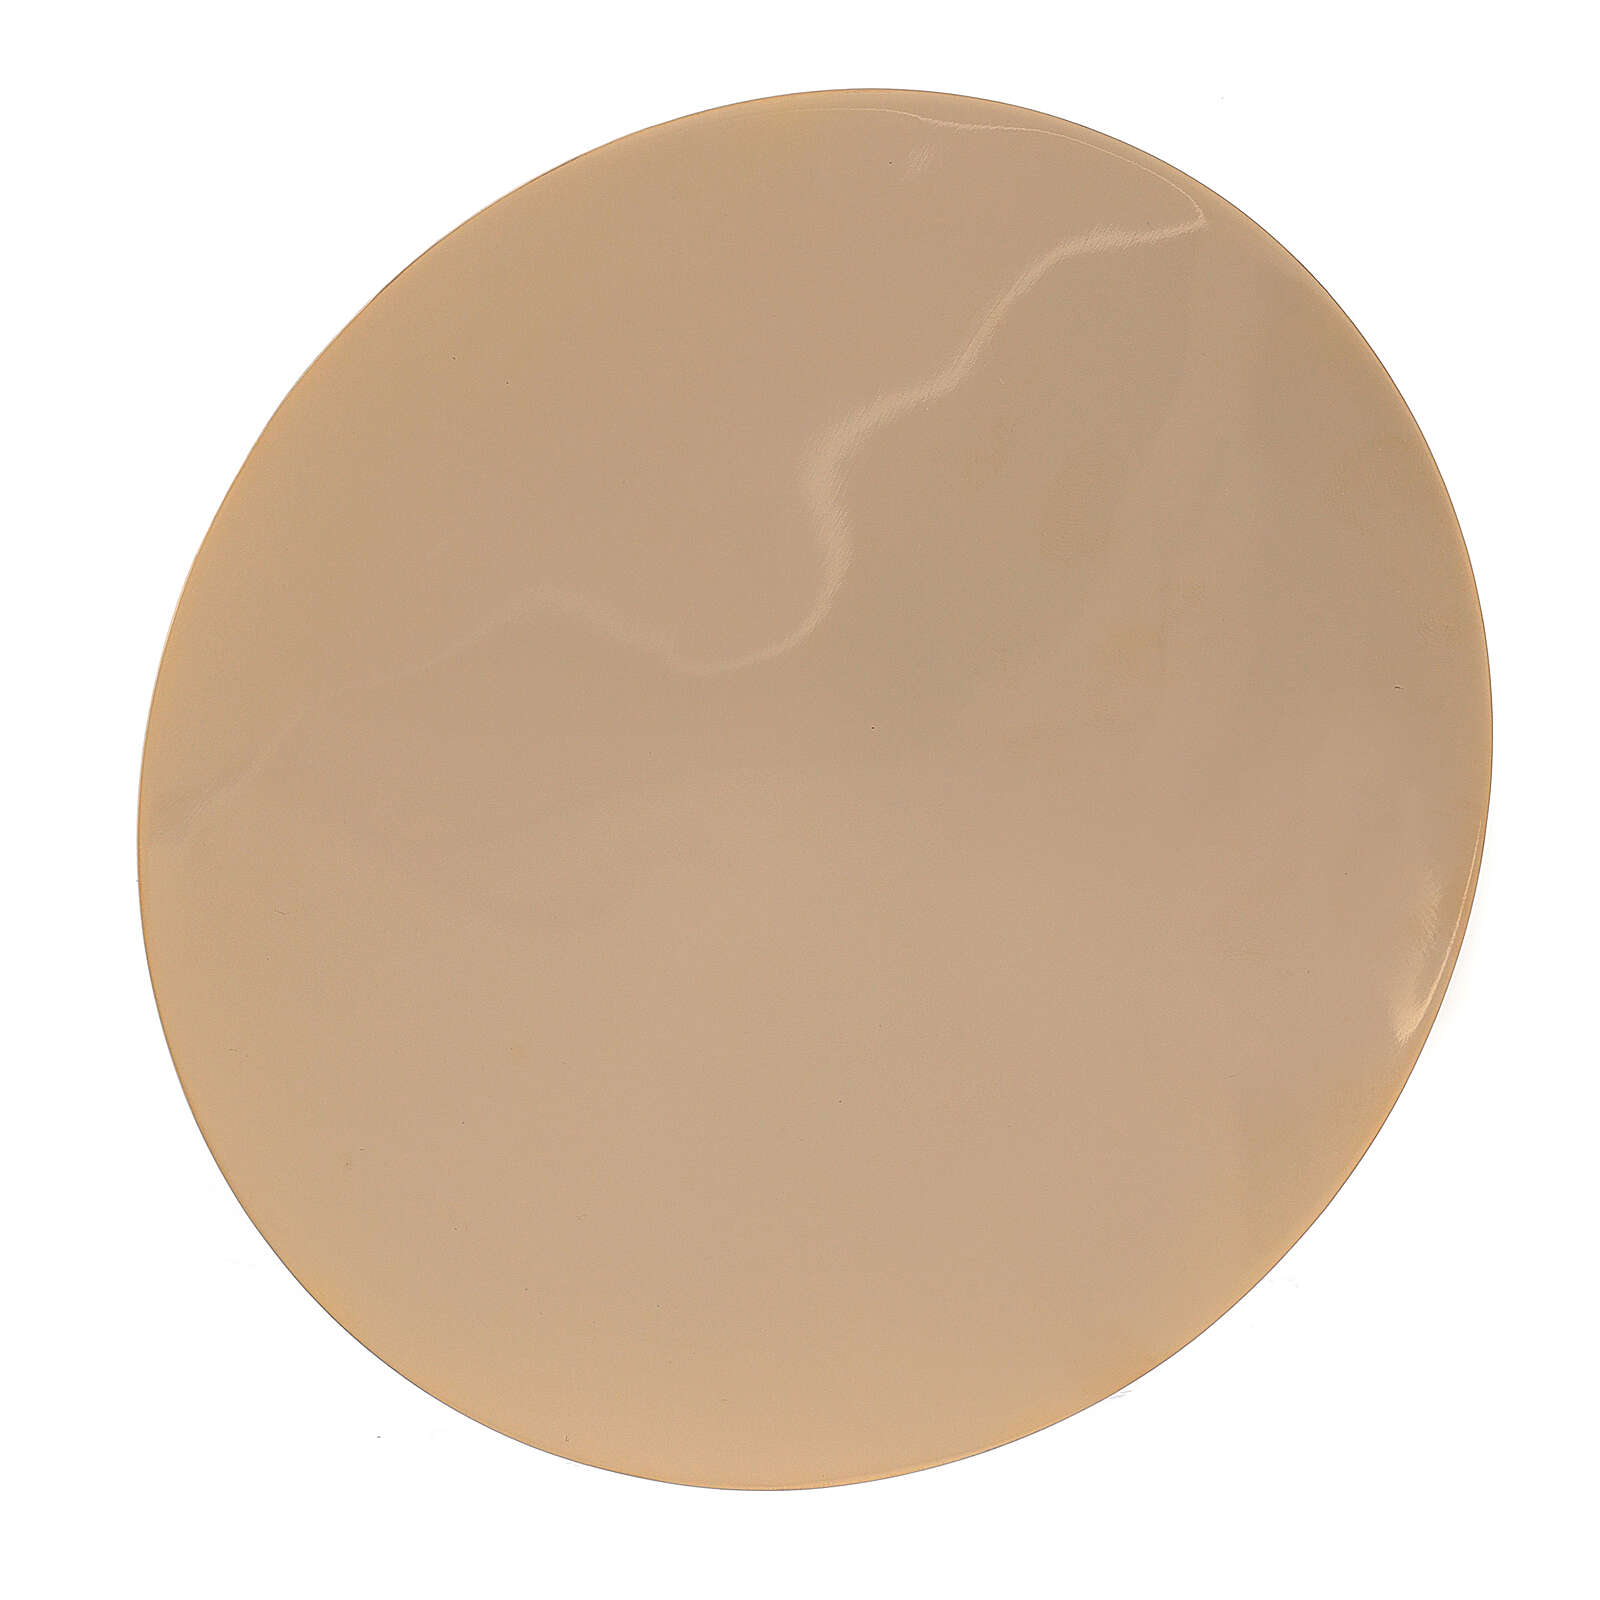 Smooth gold plated brass paten d. 5 in 4